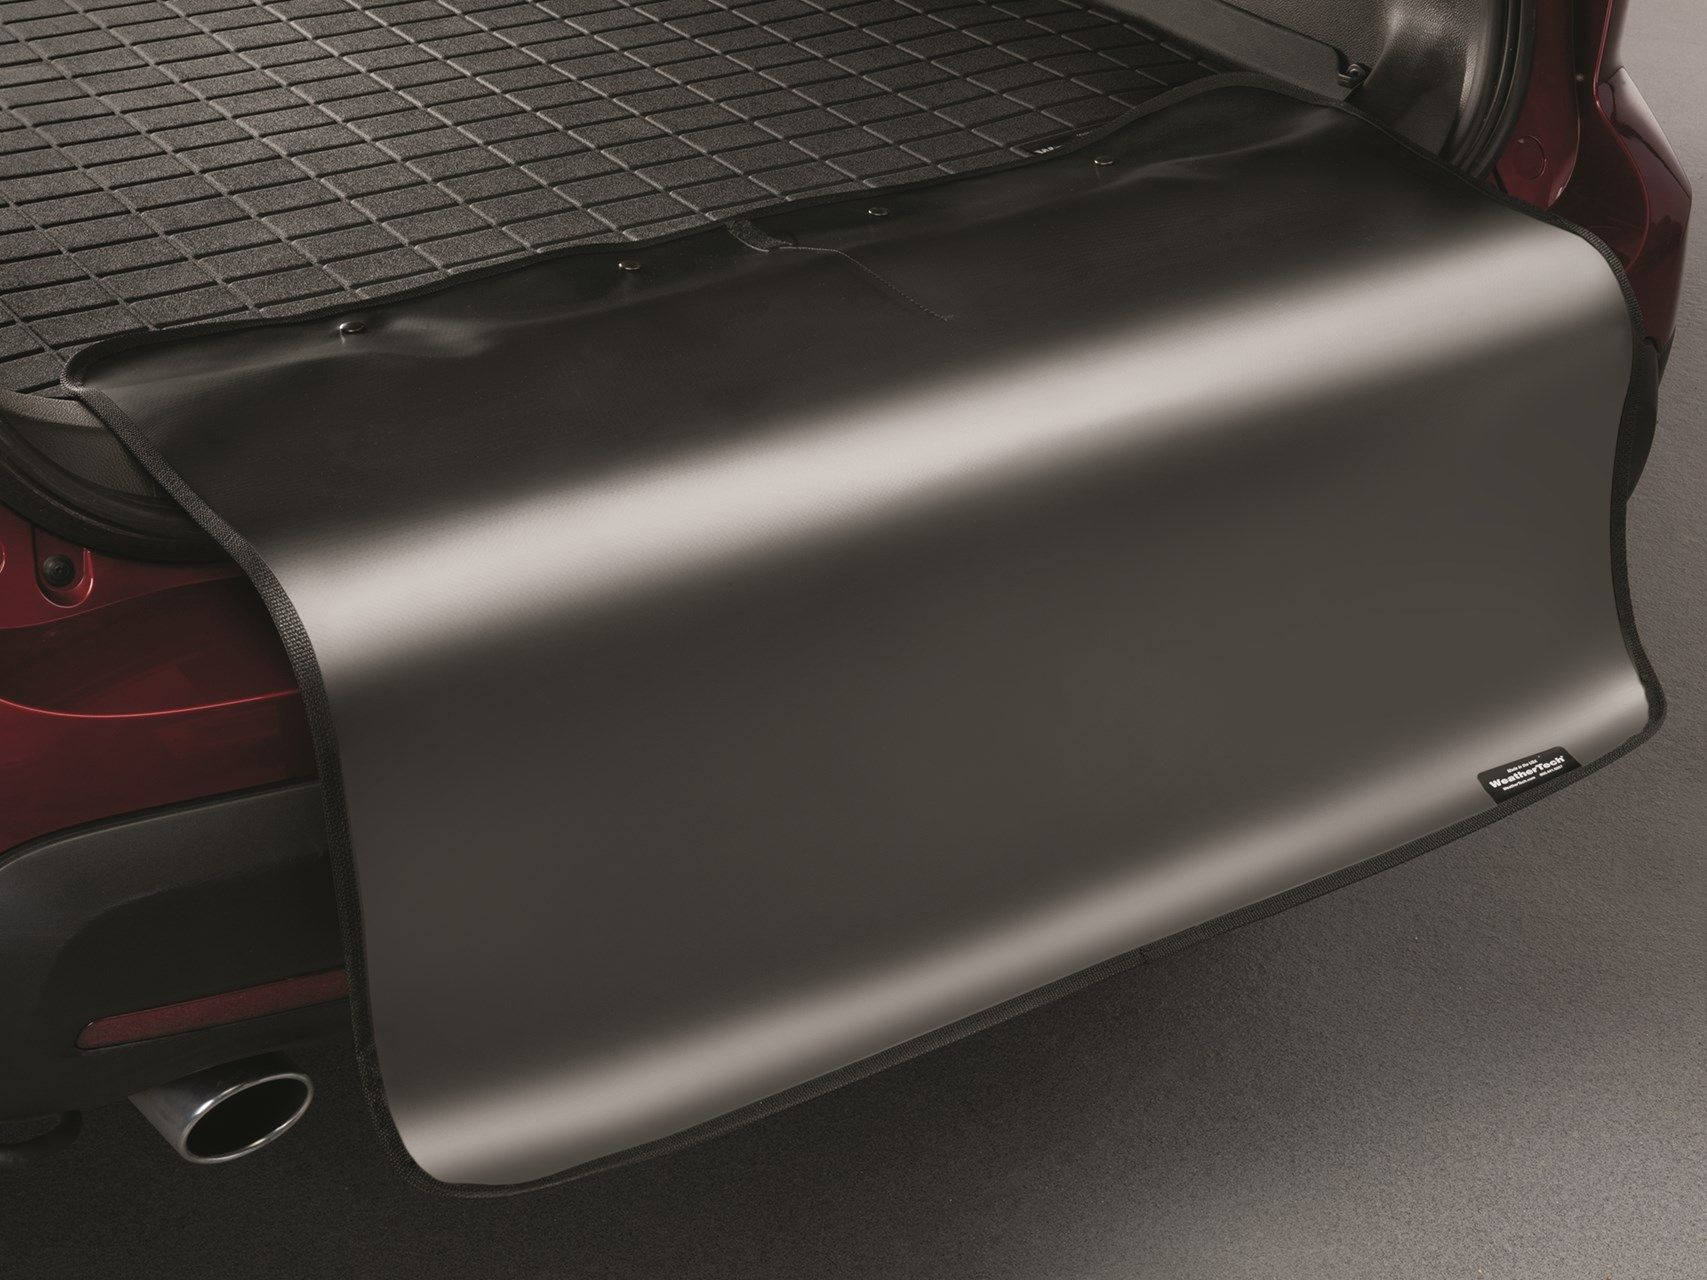 The WeatherTech Bumper Protector is a great addition to your Cargo